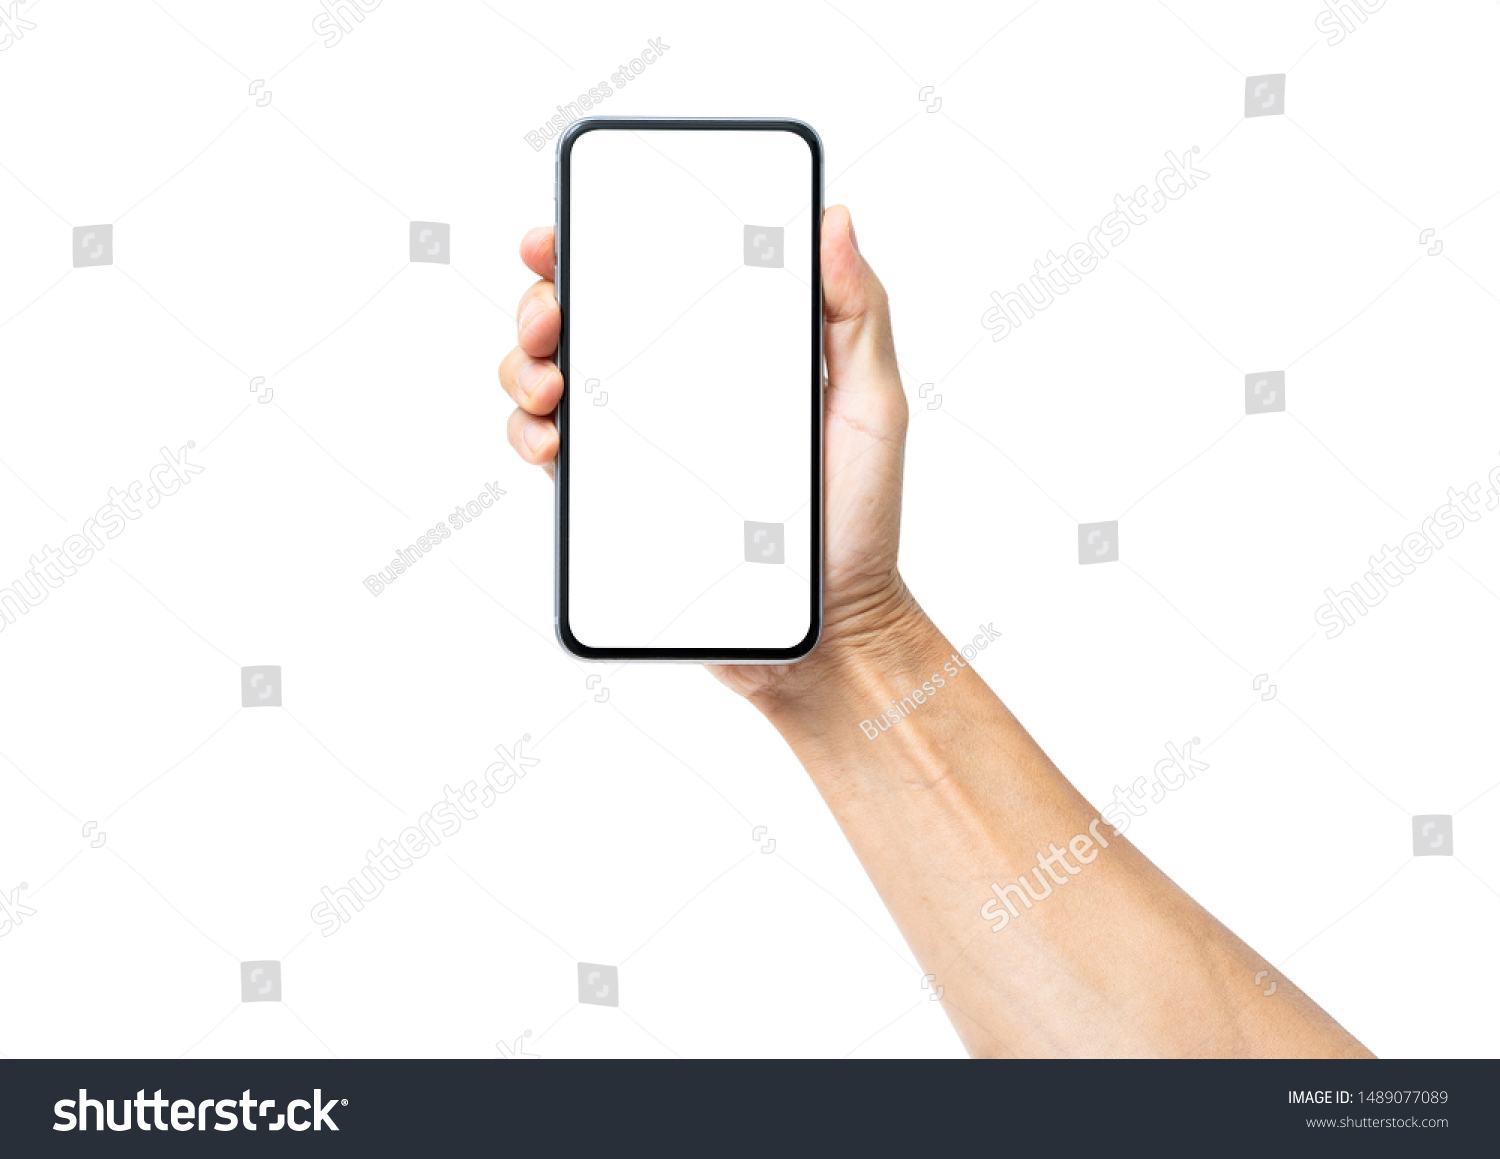 Man hand holding black smartphone isolated on white background, clipping path #1489077089